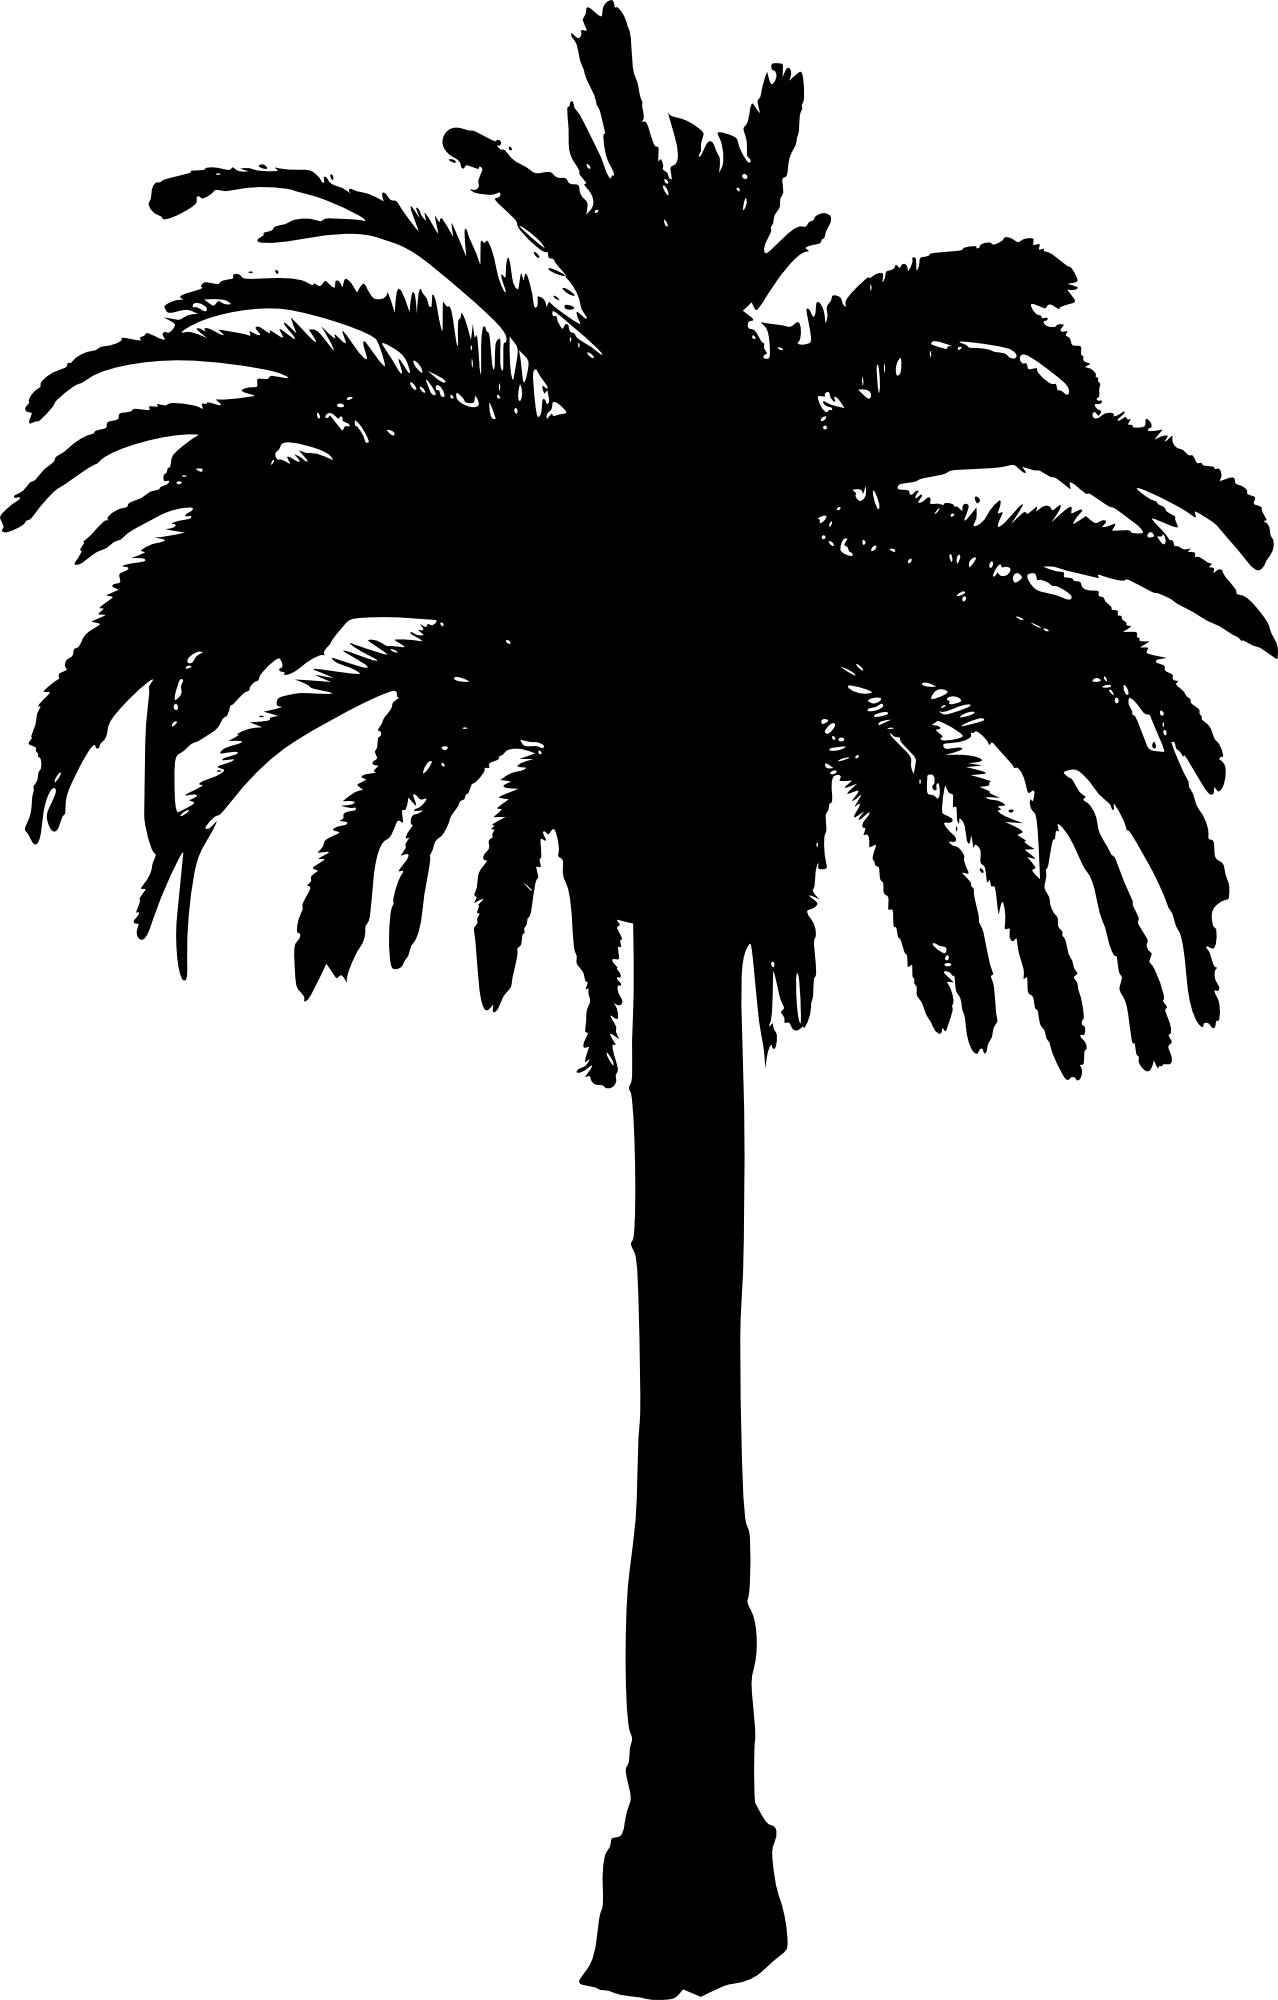 palm silhouettes png. Woodland clipart leafy tree